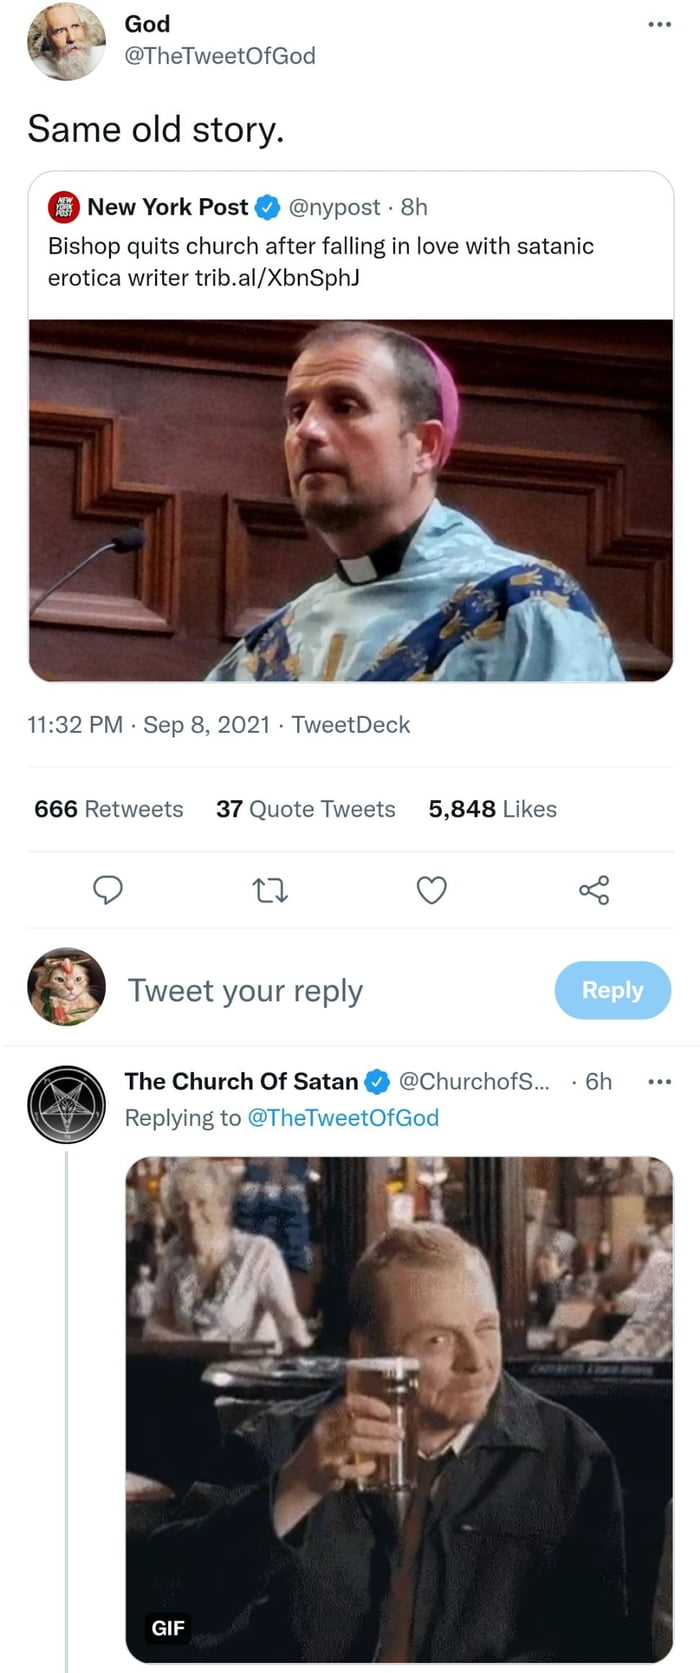 When God and Satan interact on Twitter